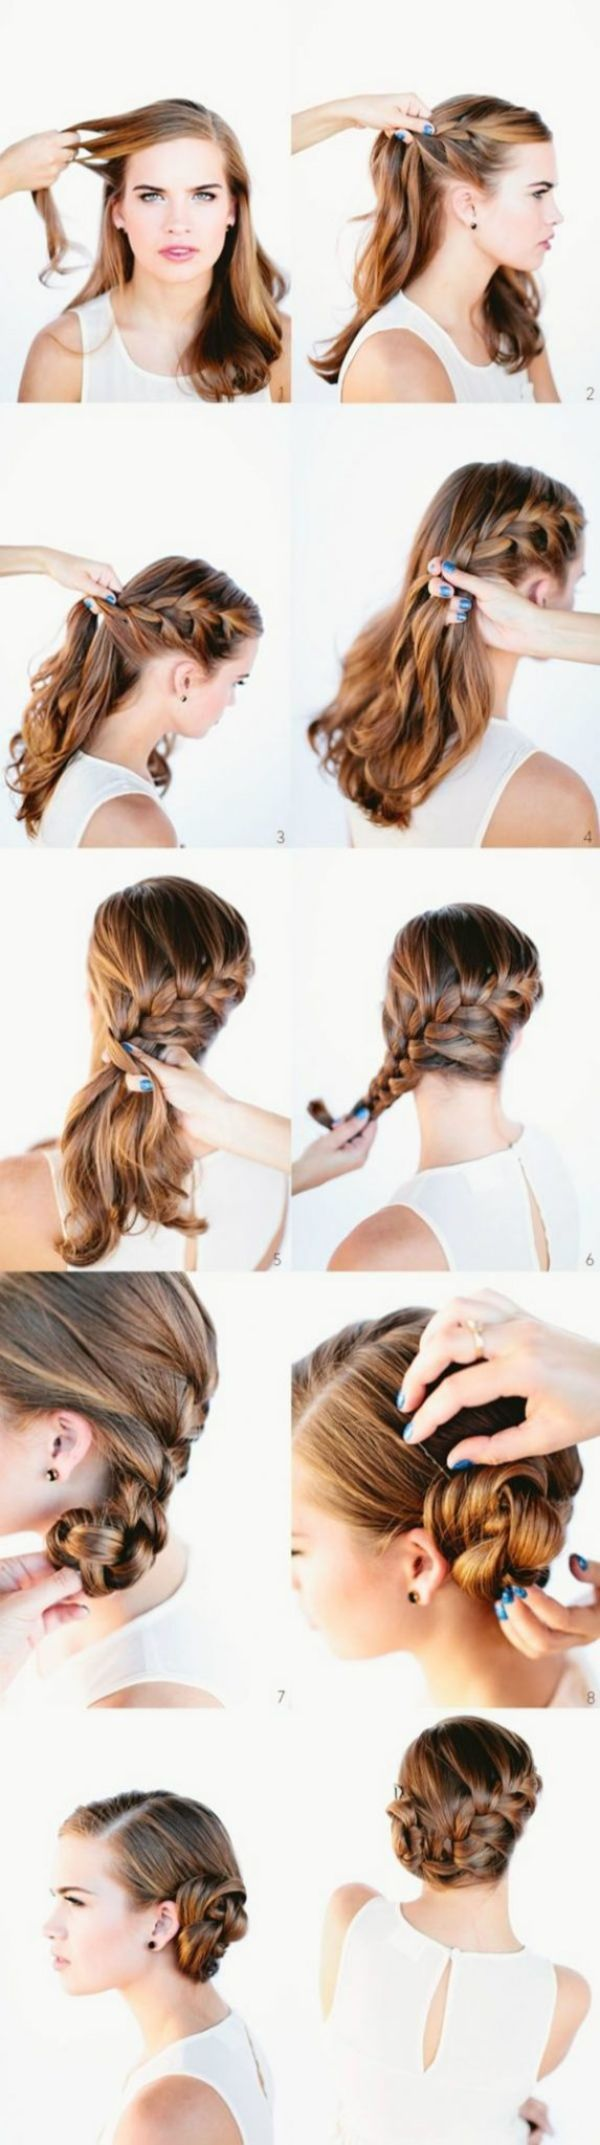 Office Hairstyles: Don't Be Afraid Of Romance Simple Hairstyles For A Strict Dress Code